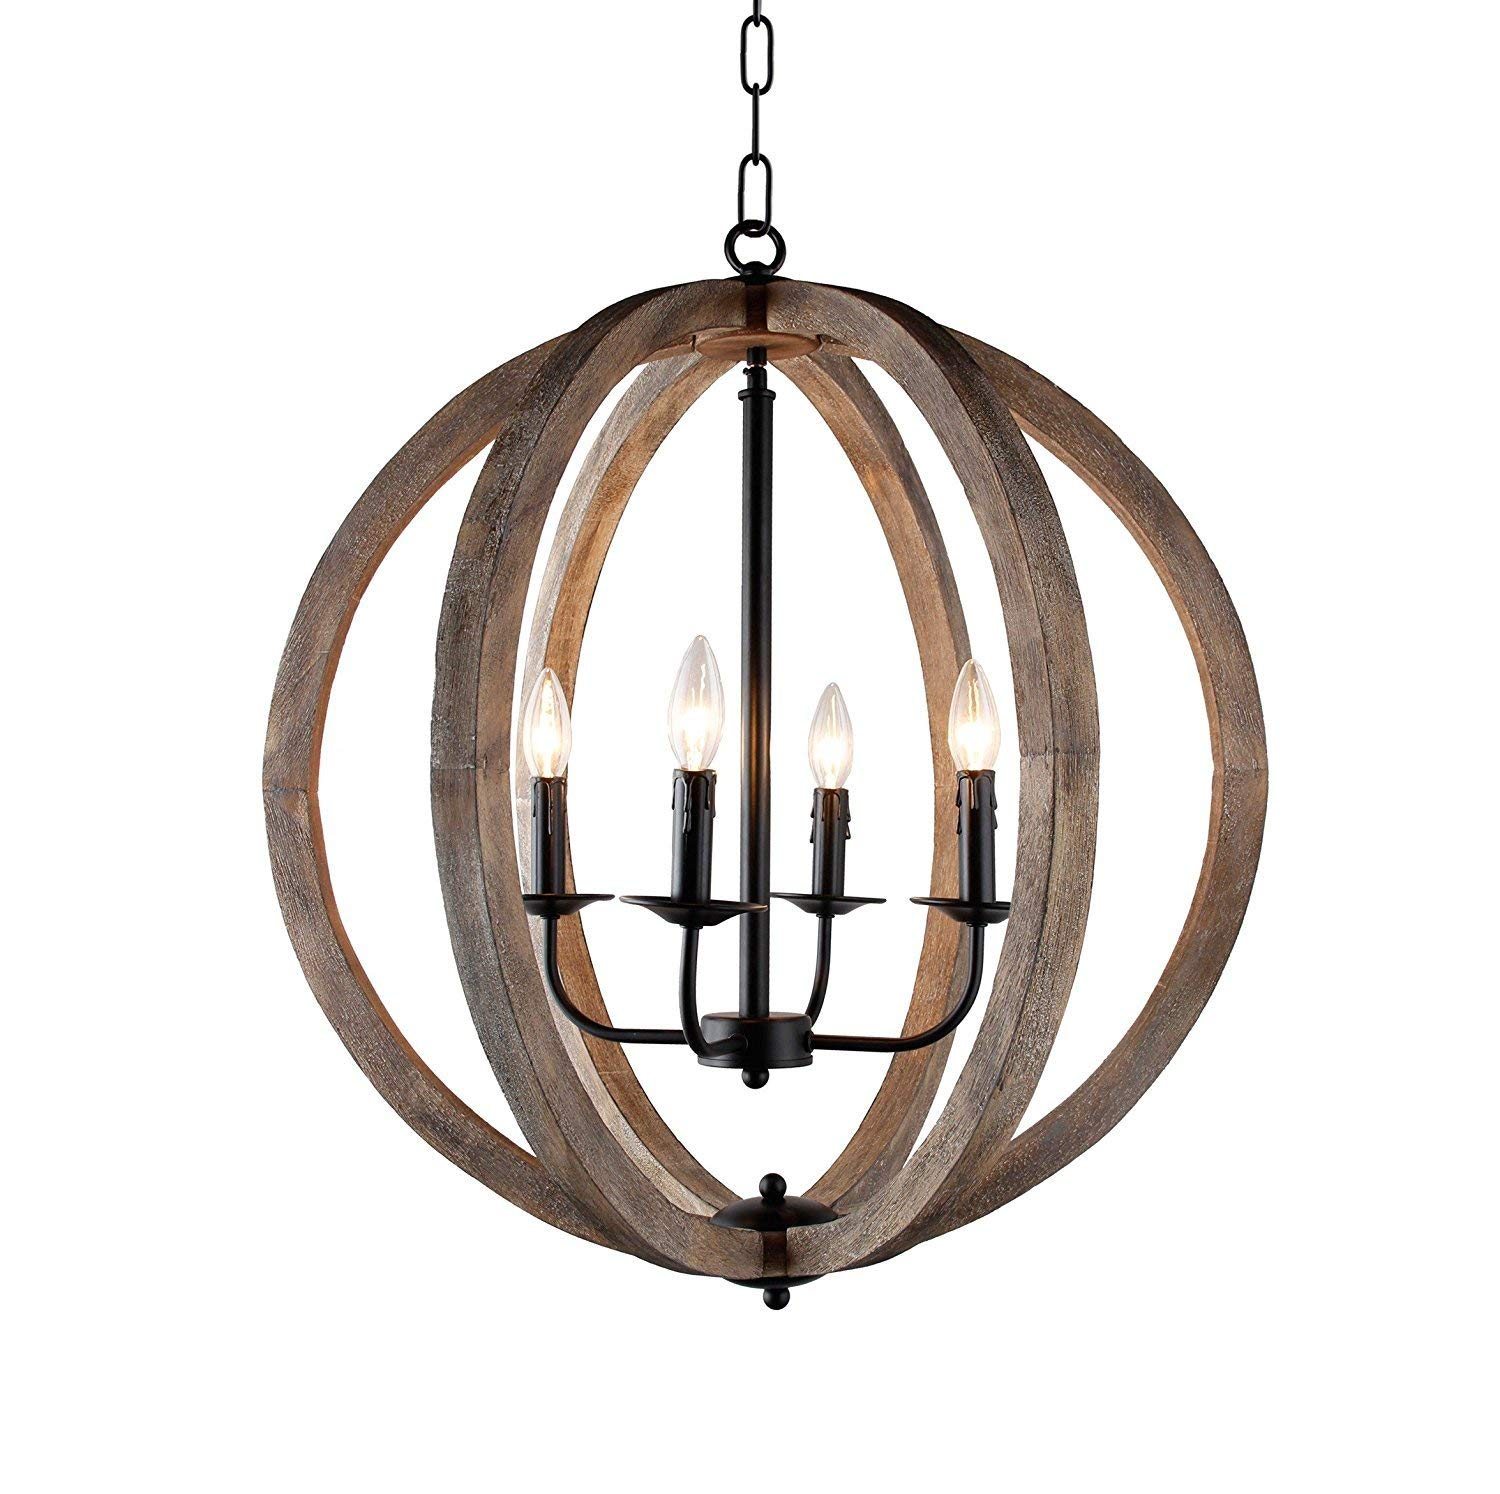 Image of: 31 X 38 Steel Cage Large Lantern Cubist Pendant Light Iron Art Design Candle Style Chandelier Pendant Ceiling Light Fixture Frame Cage Decomust Black Pendant Lights